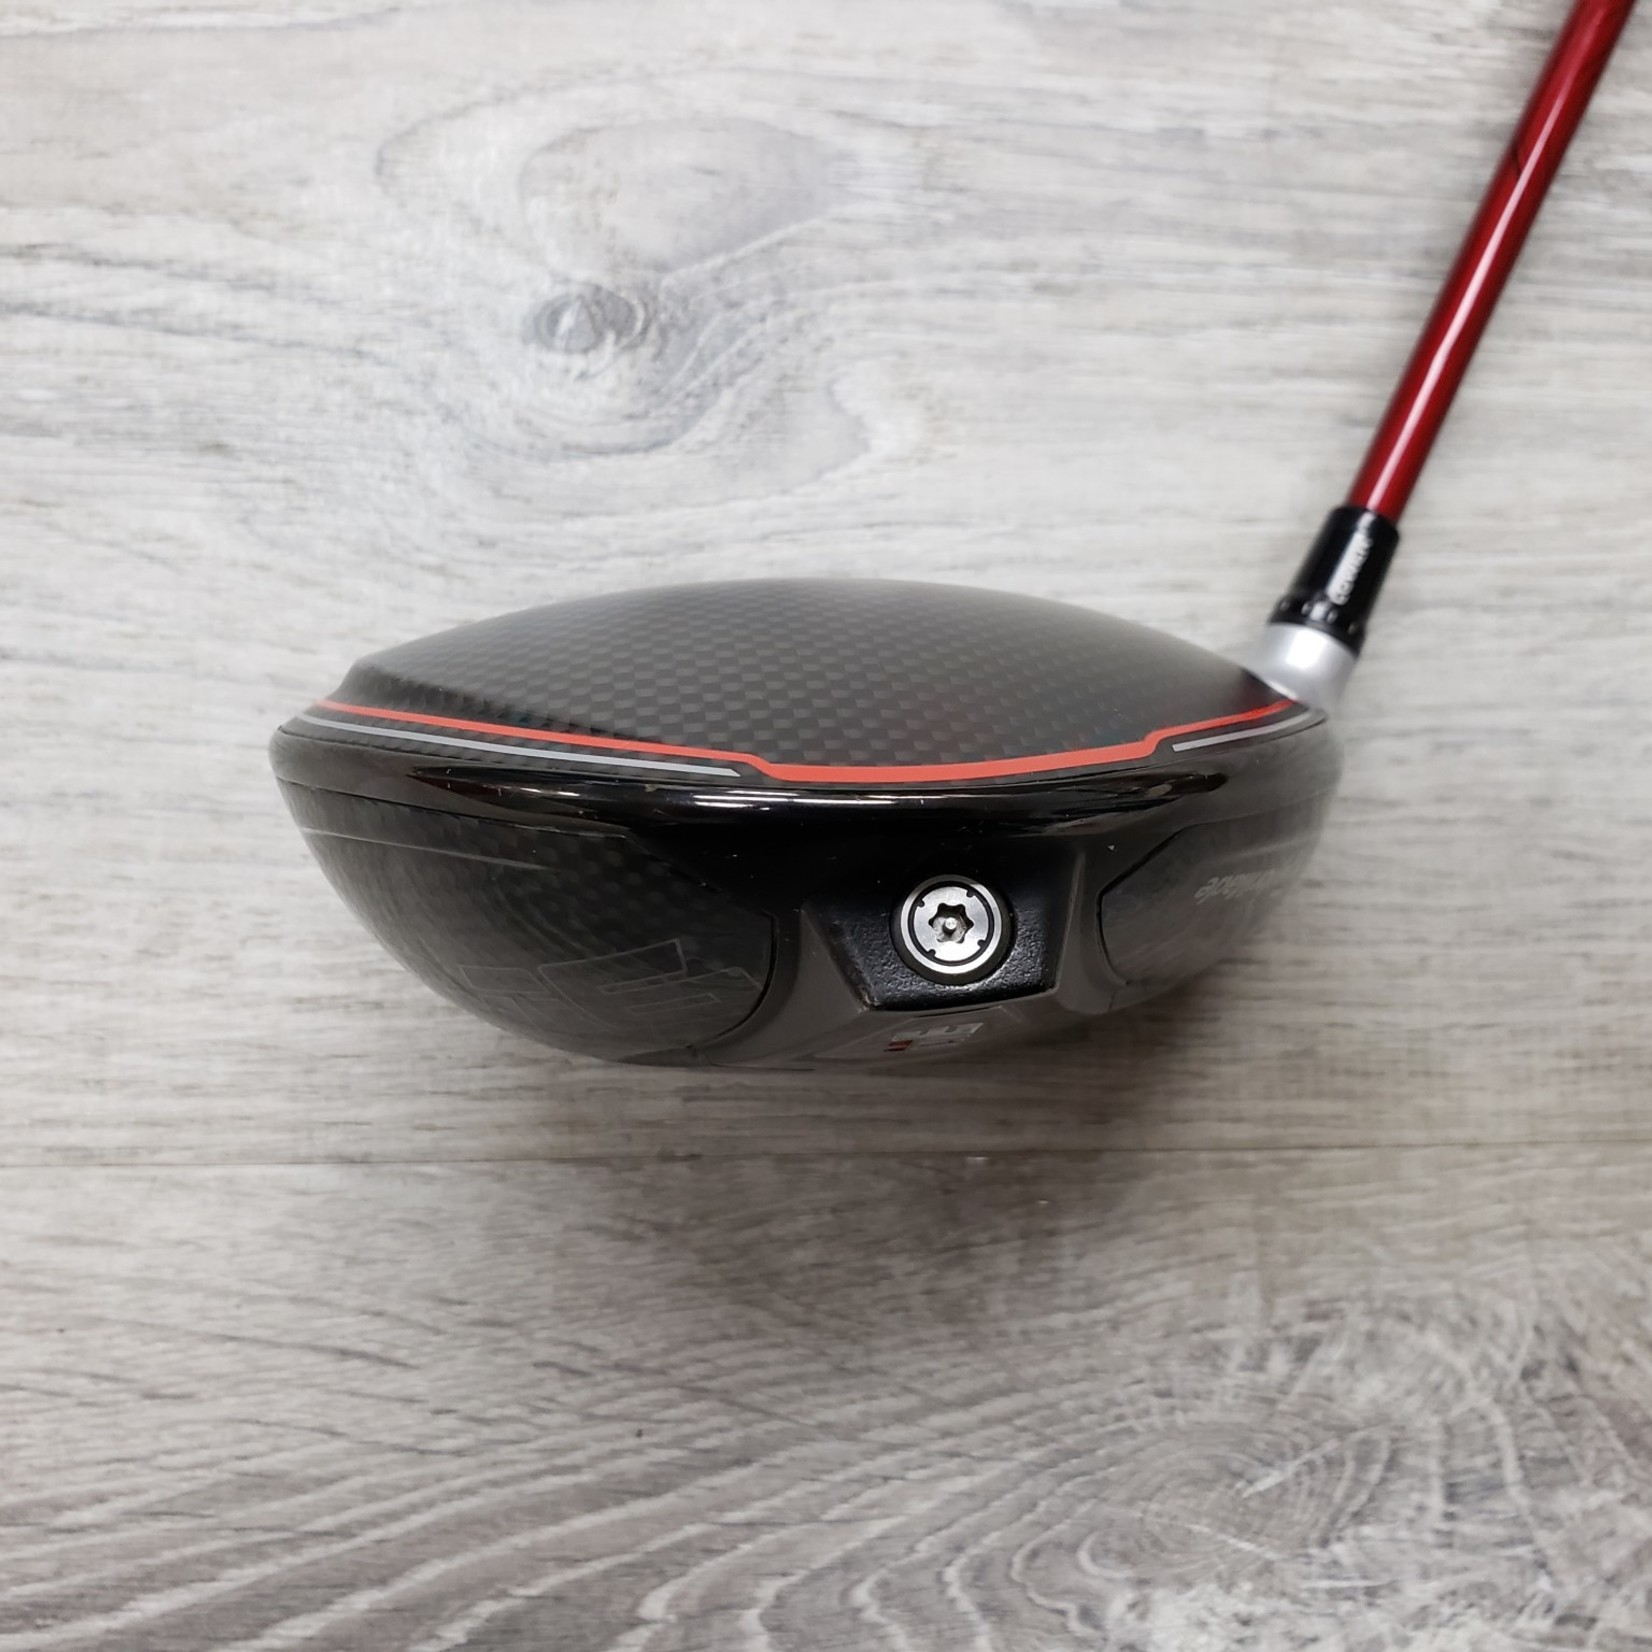 TaylorMade TaylorMade M6 Driver 10.5 Degrees 45G Stiff (LH)